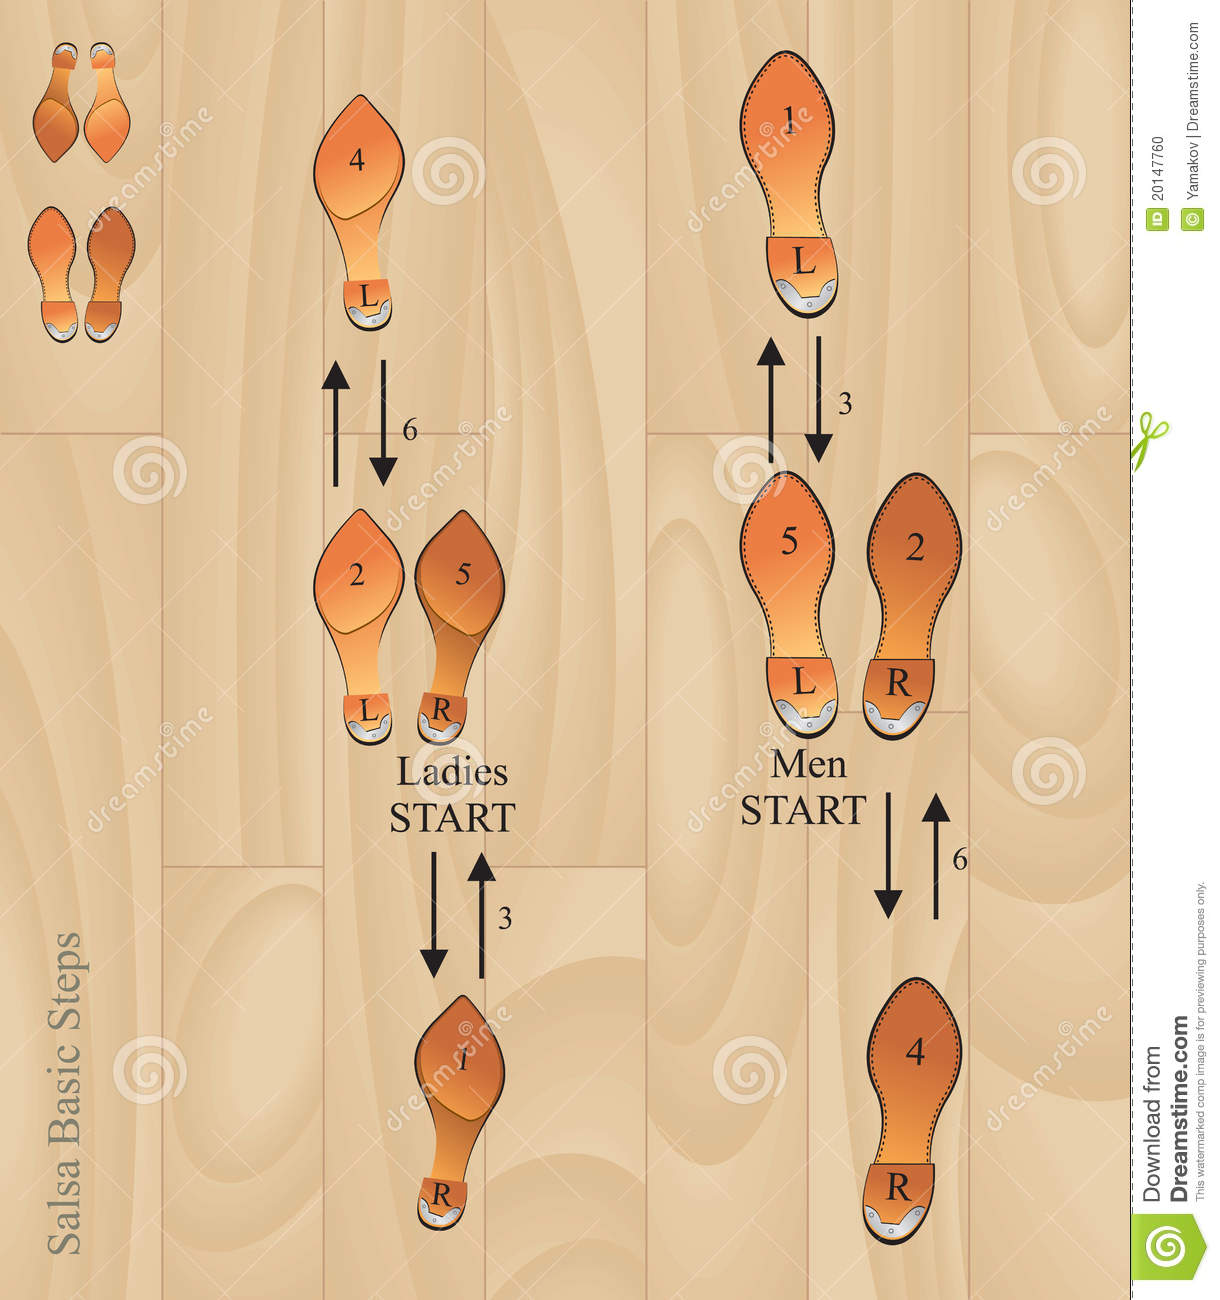 Chacha Dance Steps Diagram Image Download